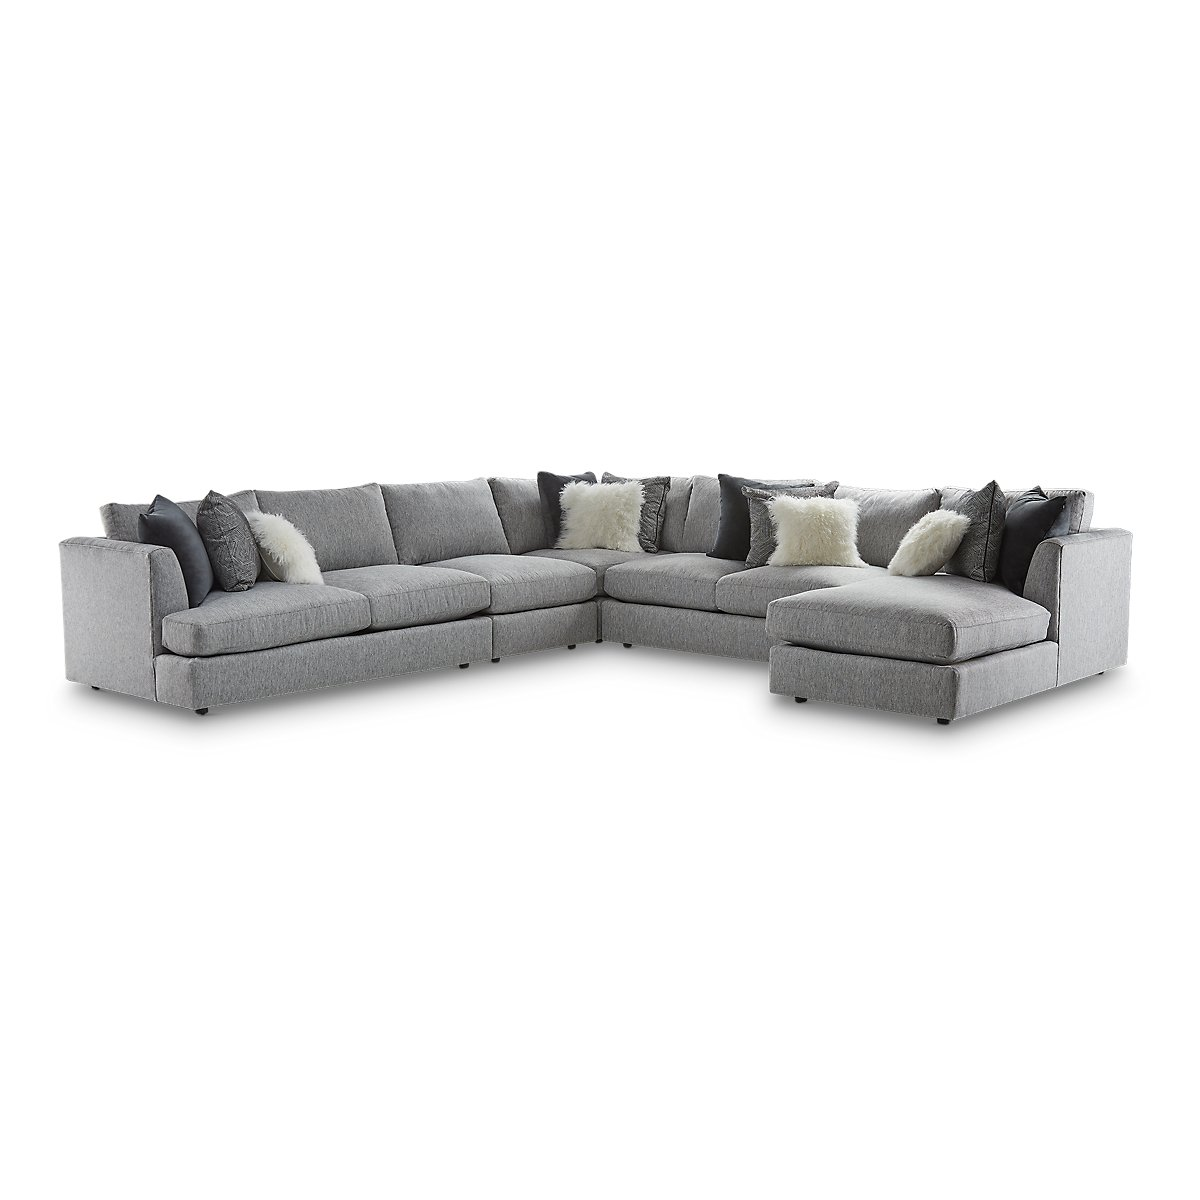 Sydney Gray Fabric Large Right Chaise Sectional Living Room Sectionals City Furniture